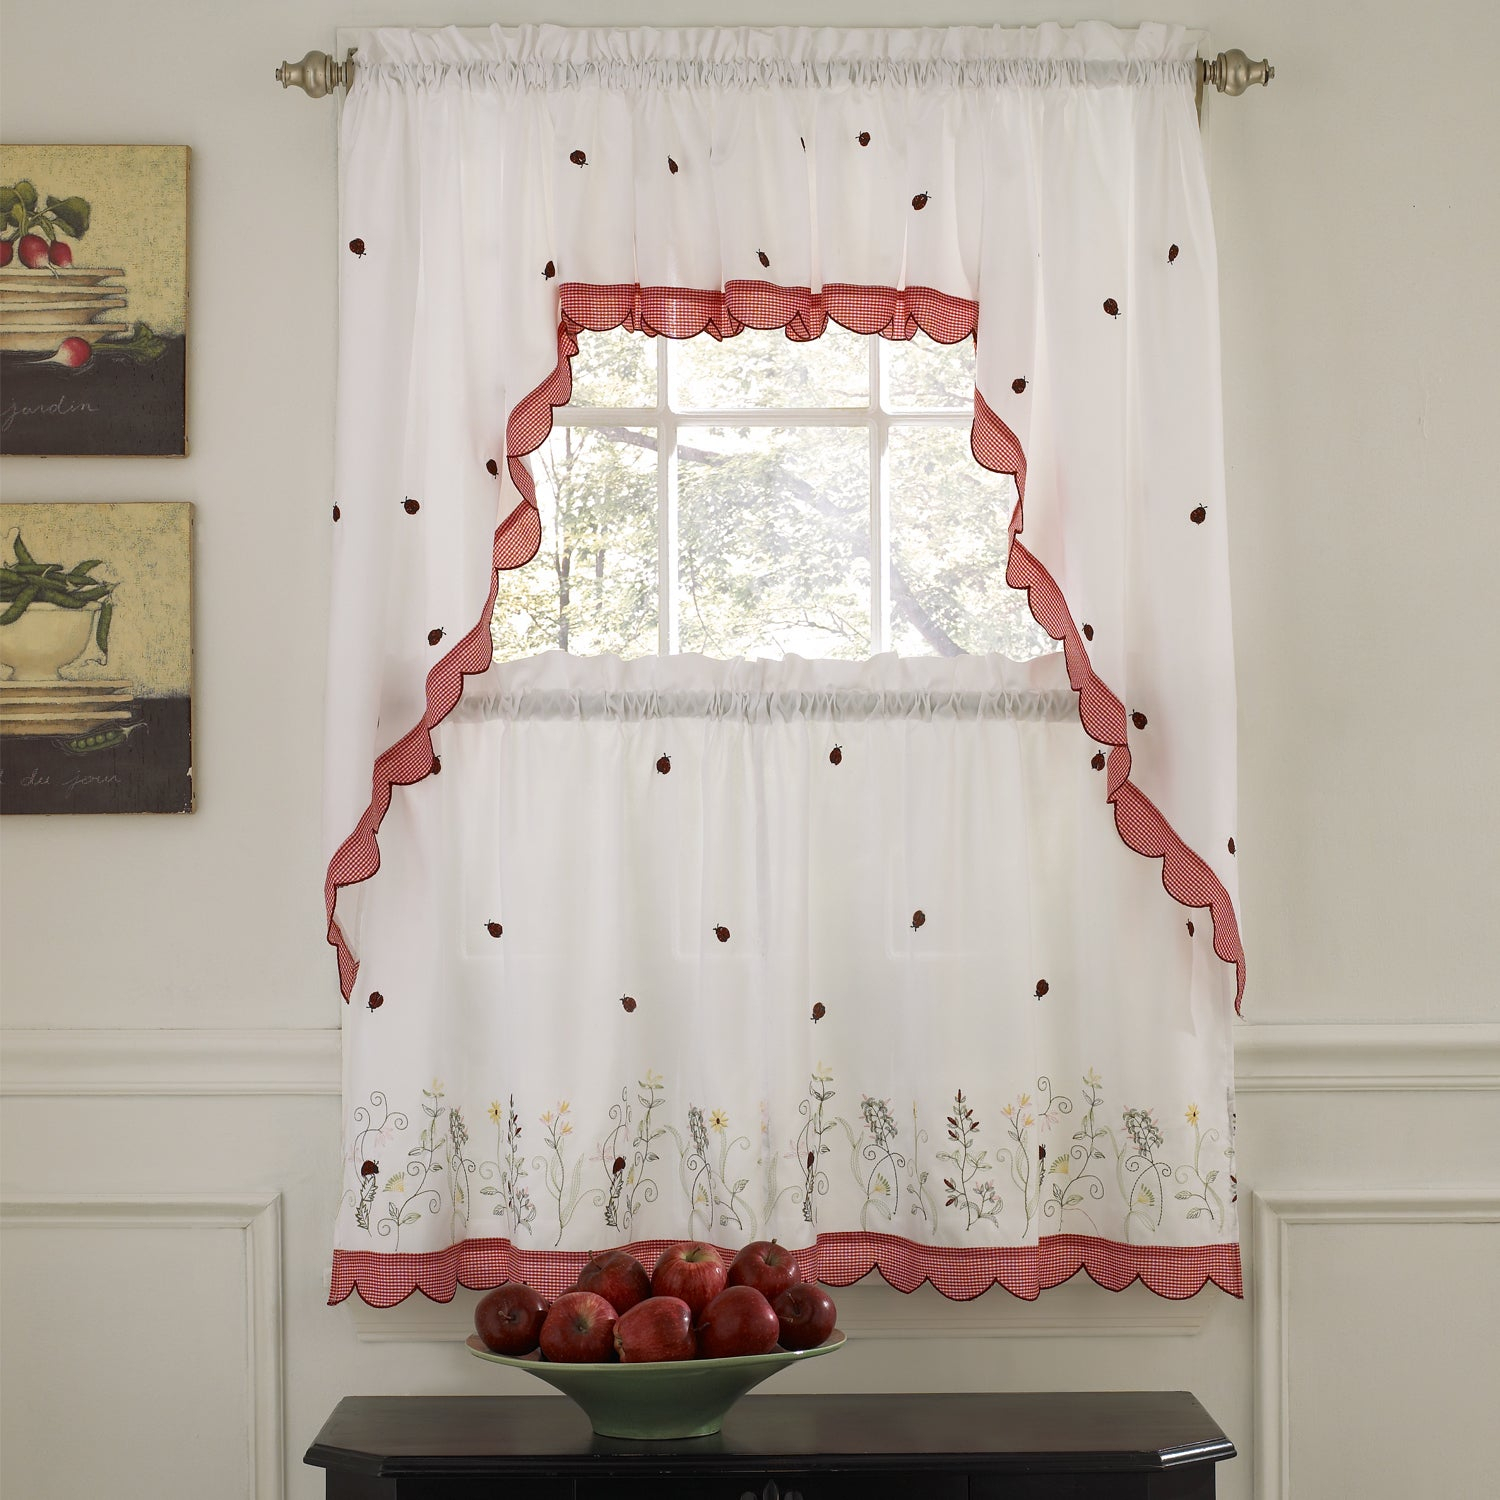 Details About Embroidered Ladybugs Window Curtain Pieces In White Tone On Tone Raised Microcheck Semisheer Window Curtain Pieces (View 5 of 20)